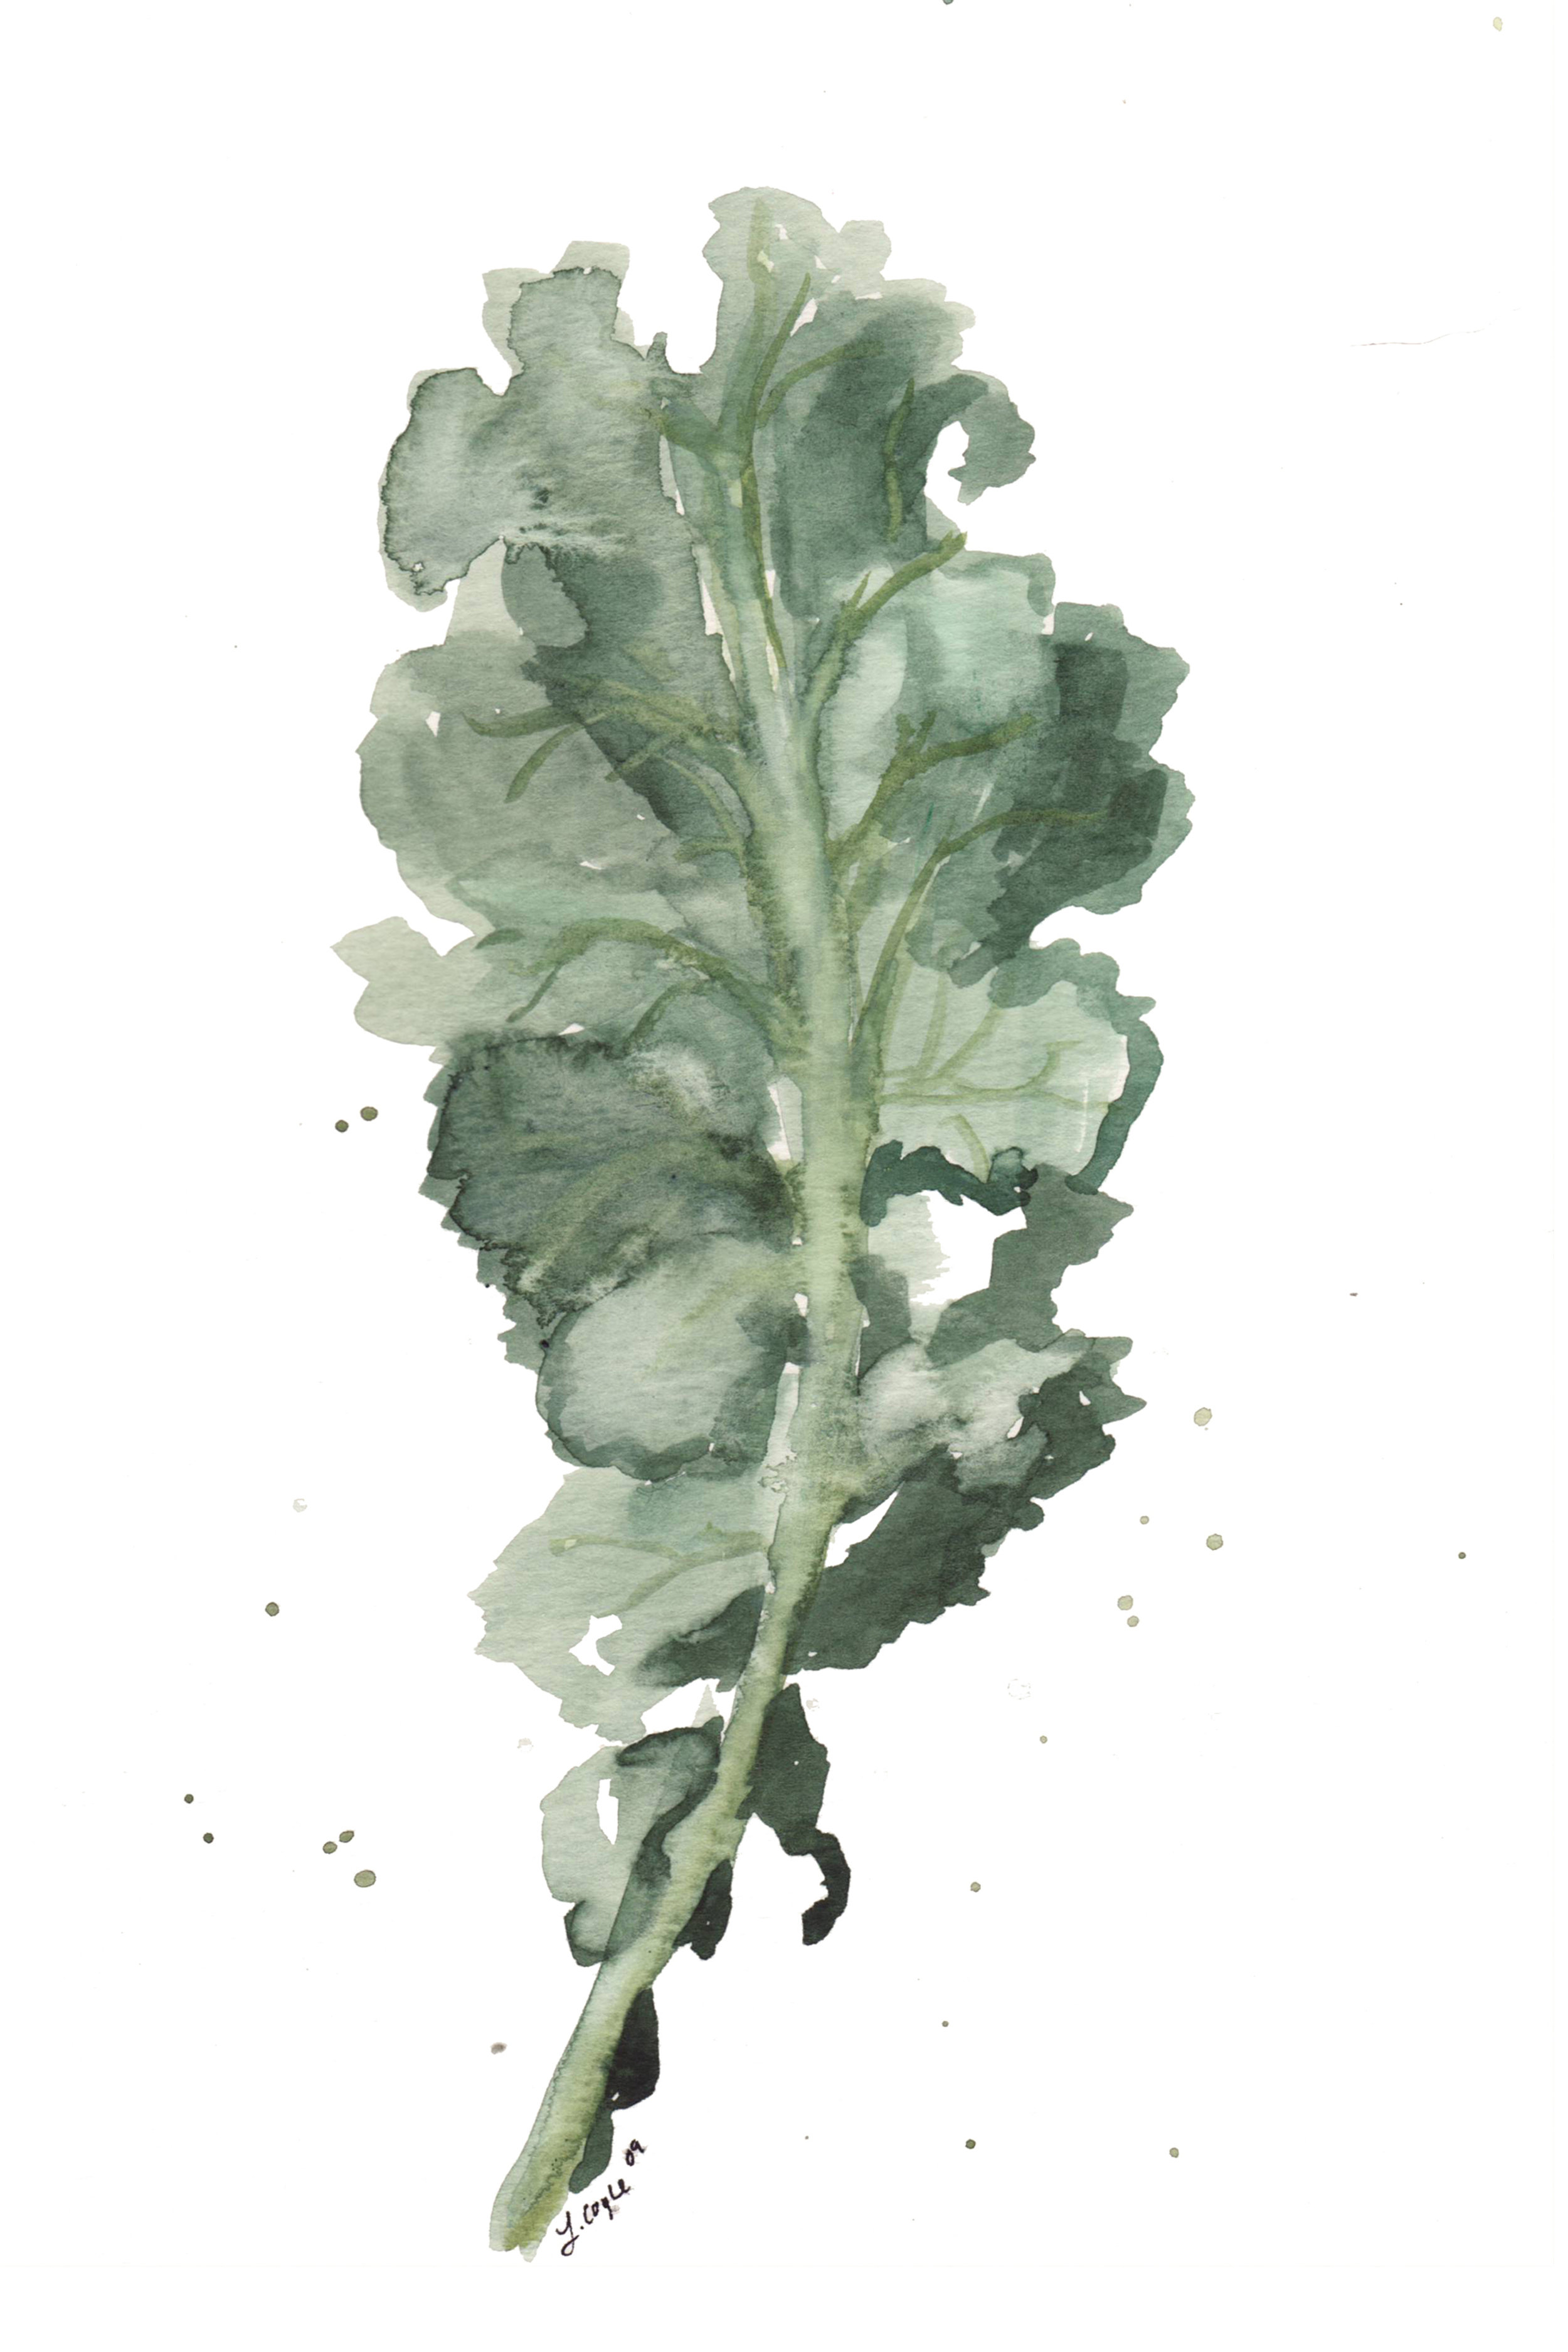 - KALE is a great early spring vegetable to plant. It does well in cooler temperatures and can be planted as soon as the soil is about 40 degrees. The best part? It only needs to grow for a month before you can start harvesting it.